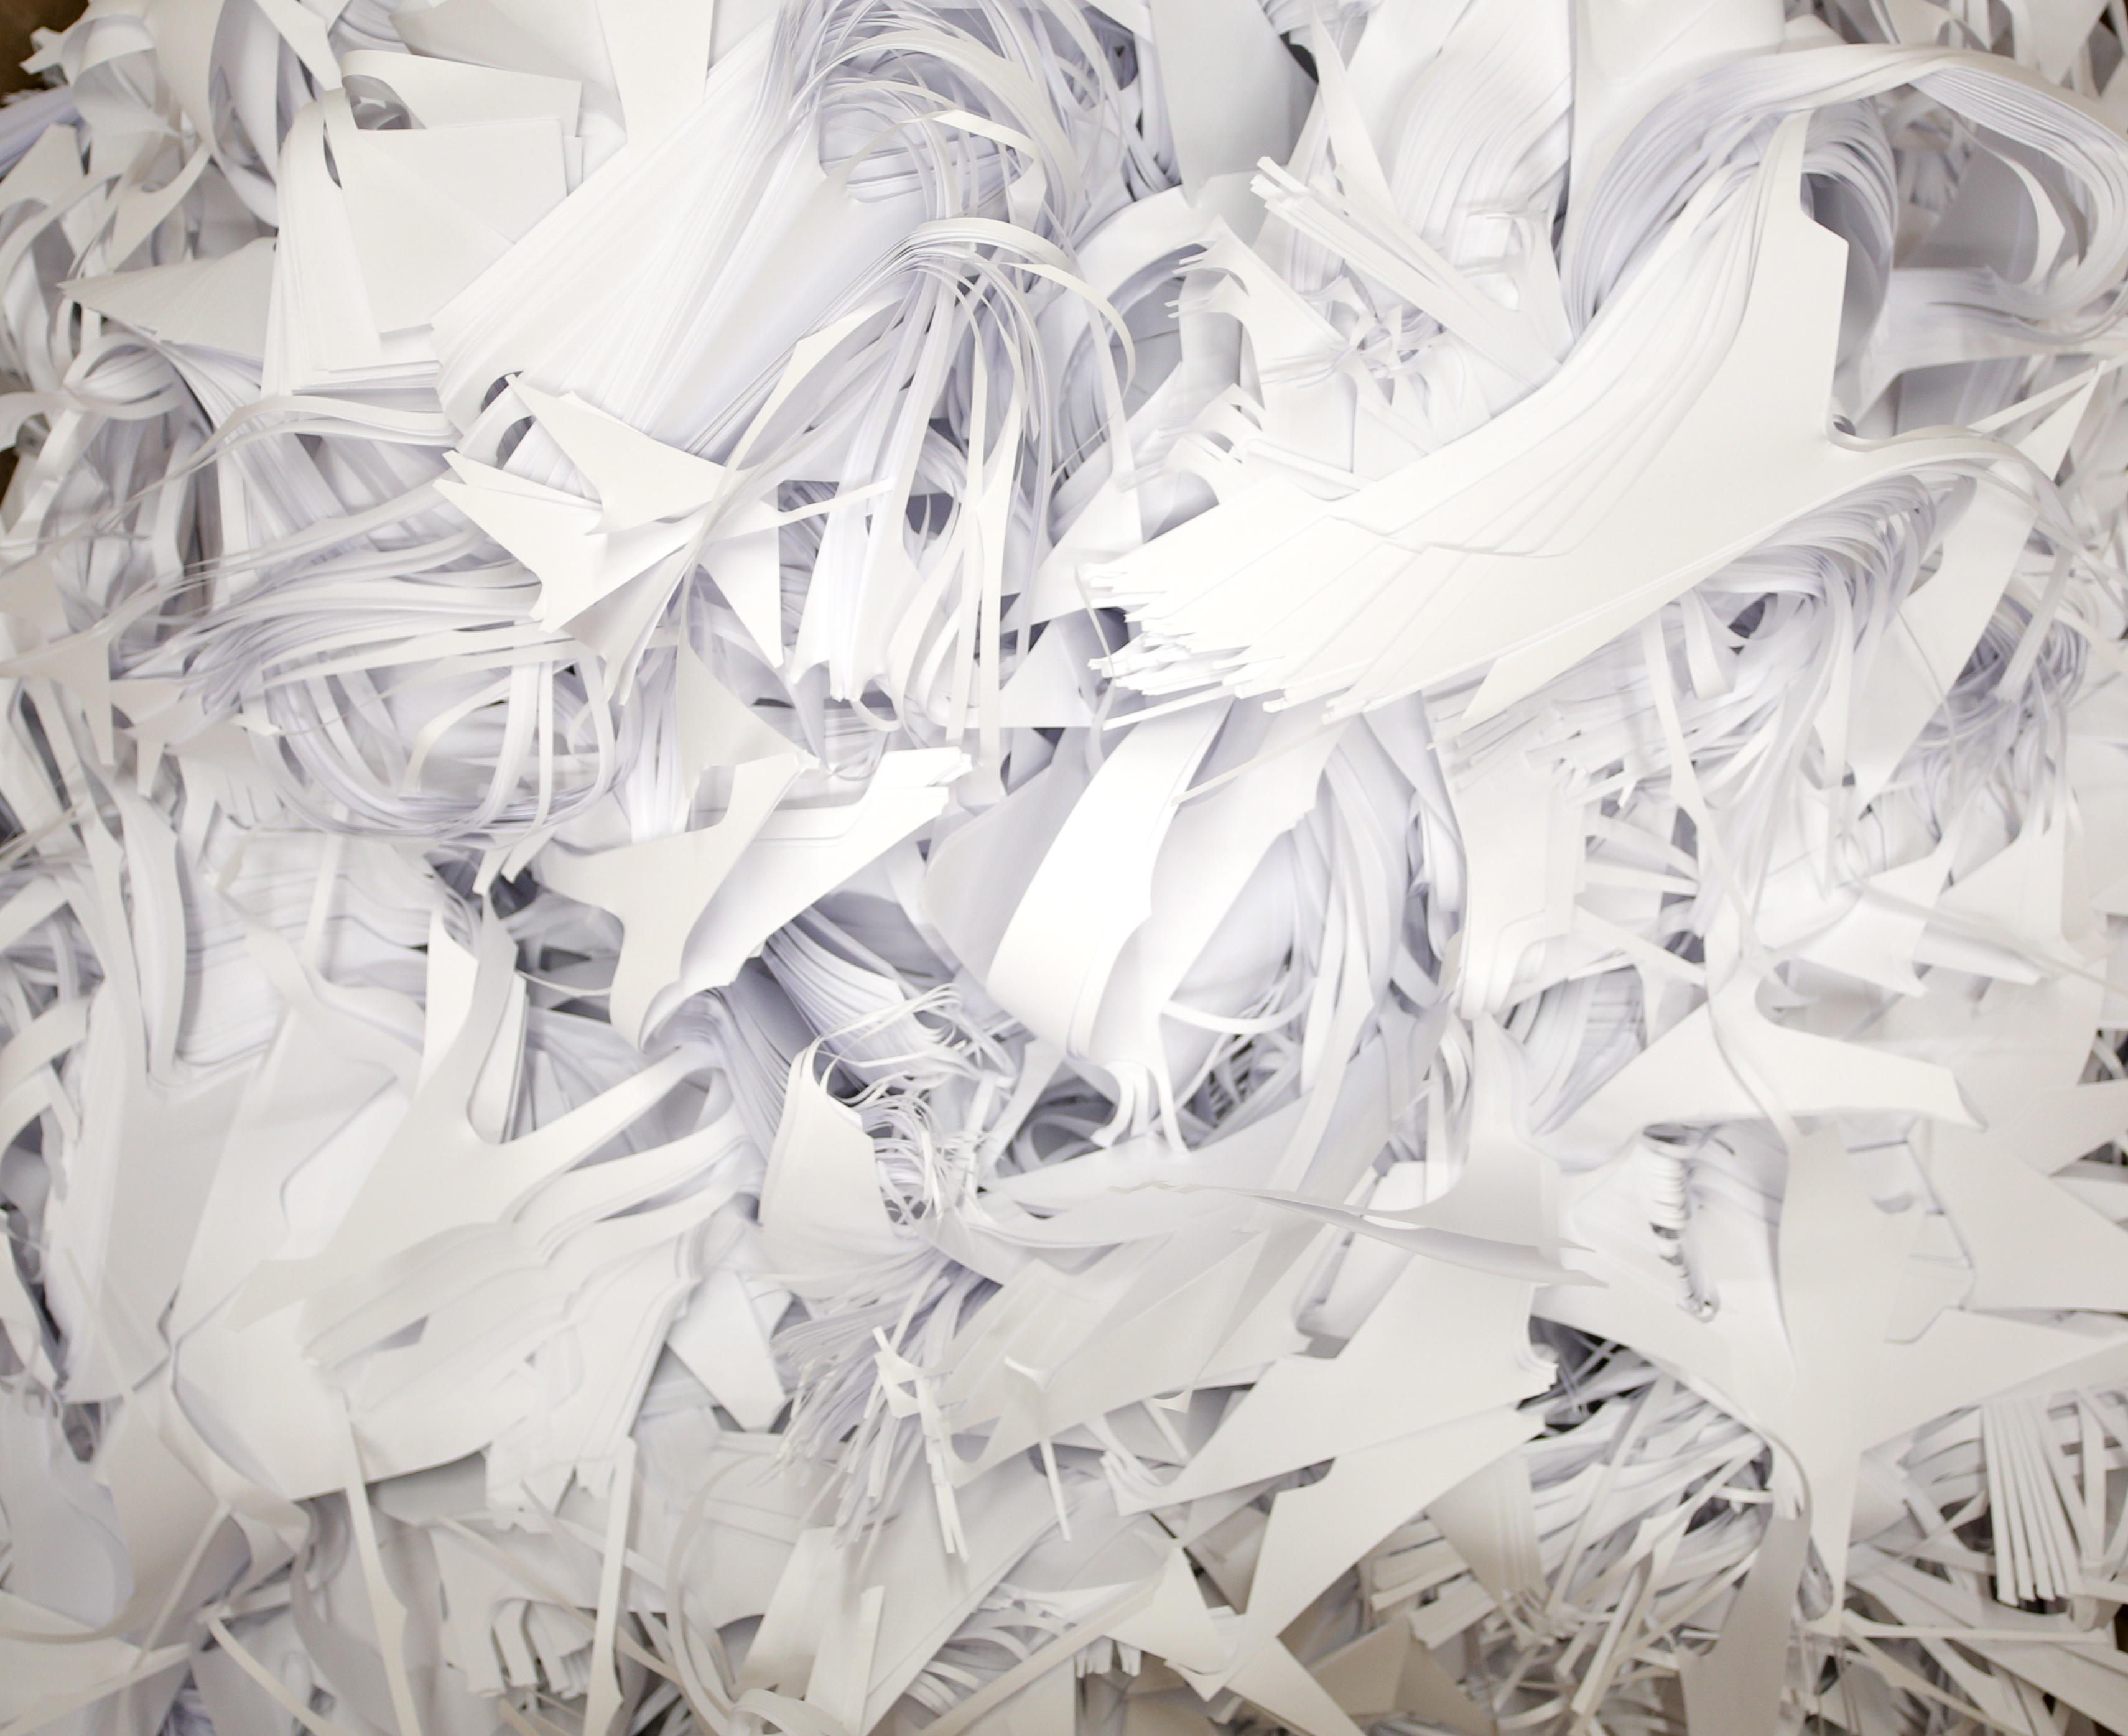 Envelopes, Printing and Paper Prices - What's Up?